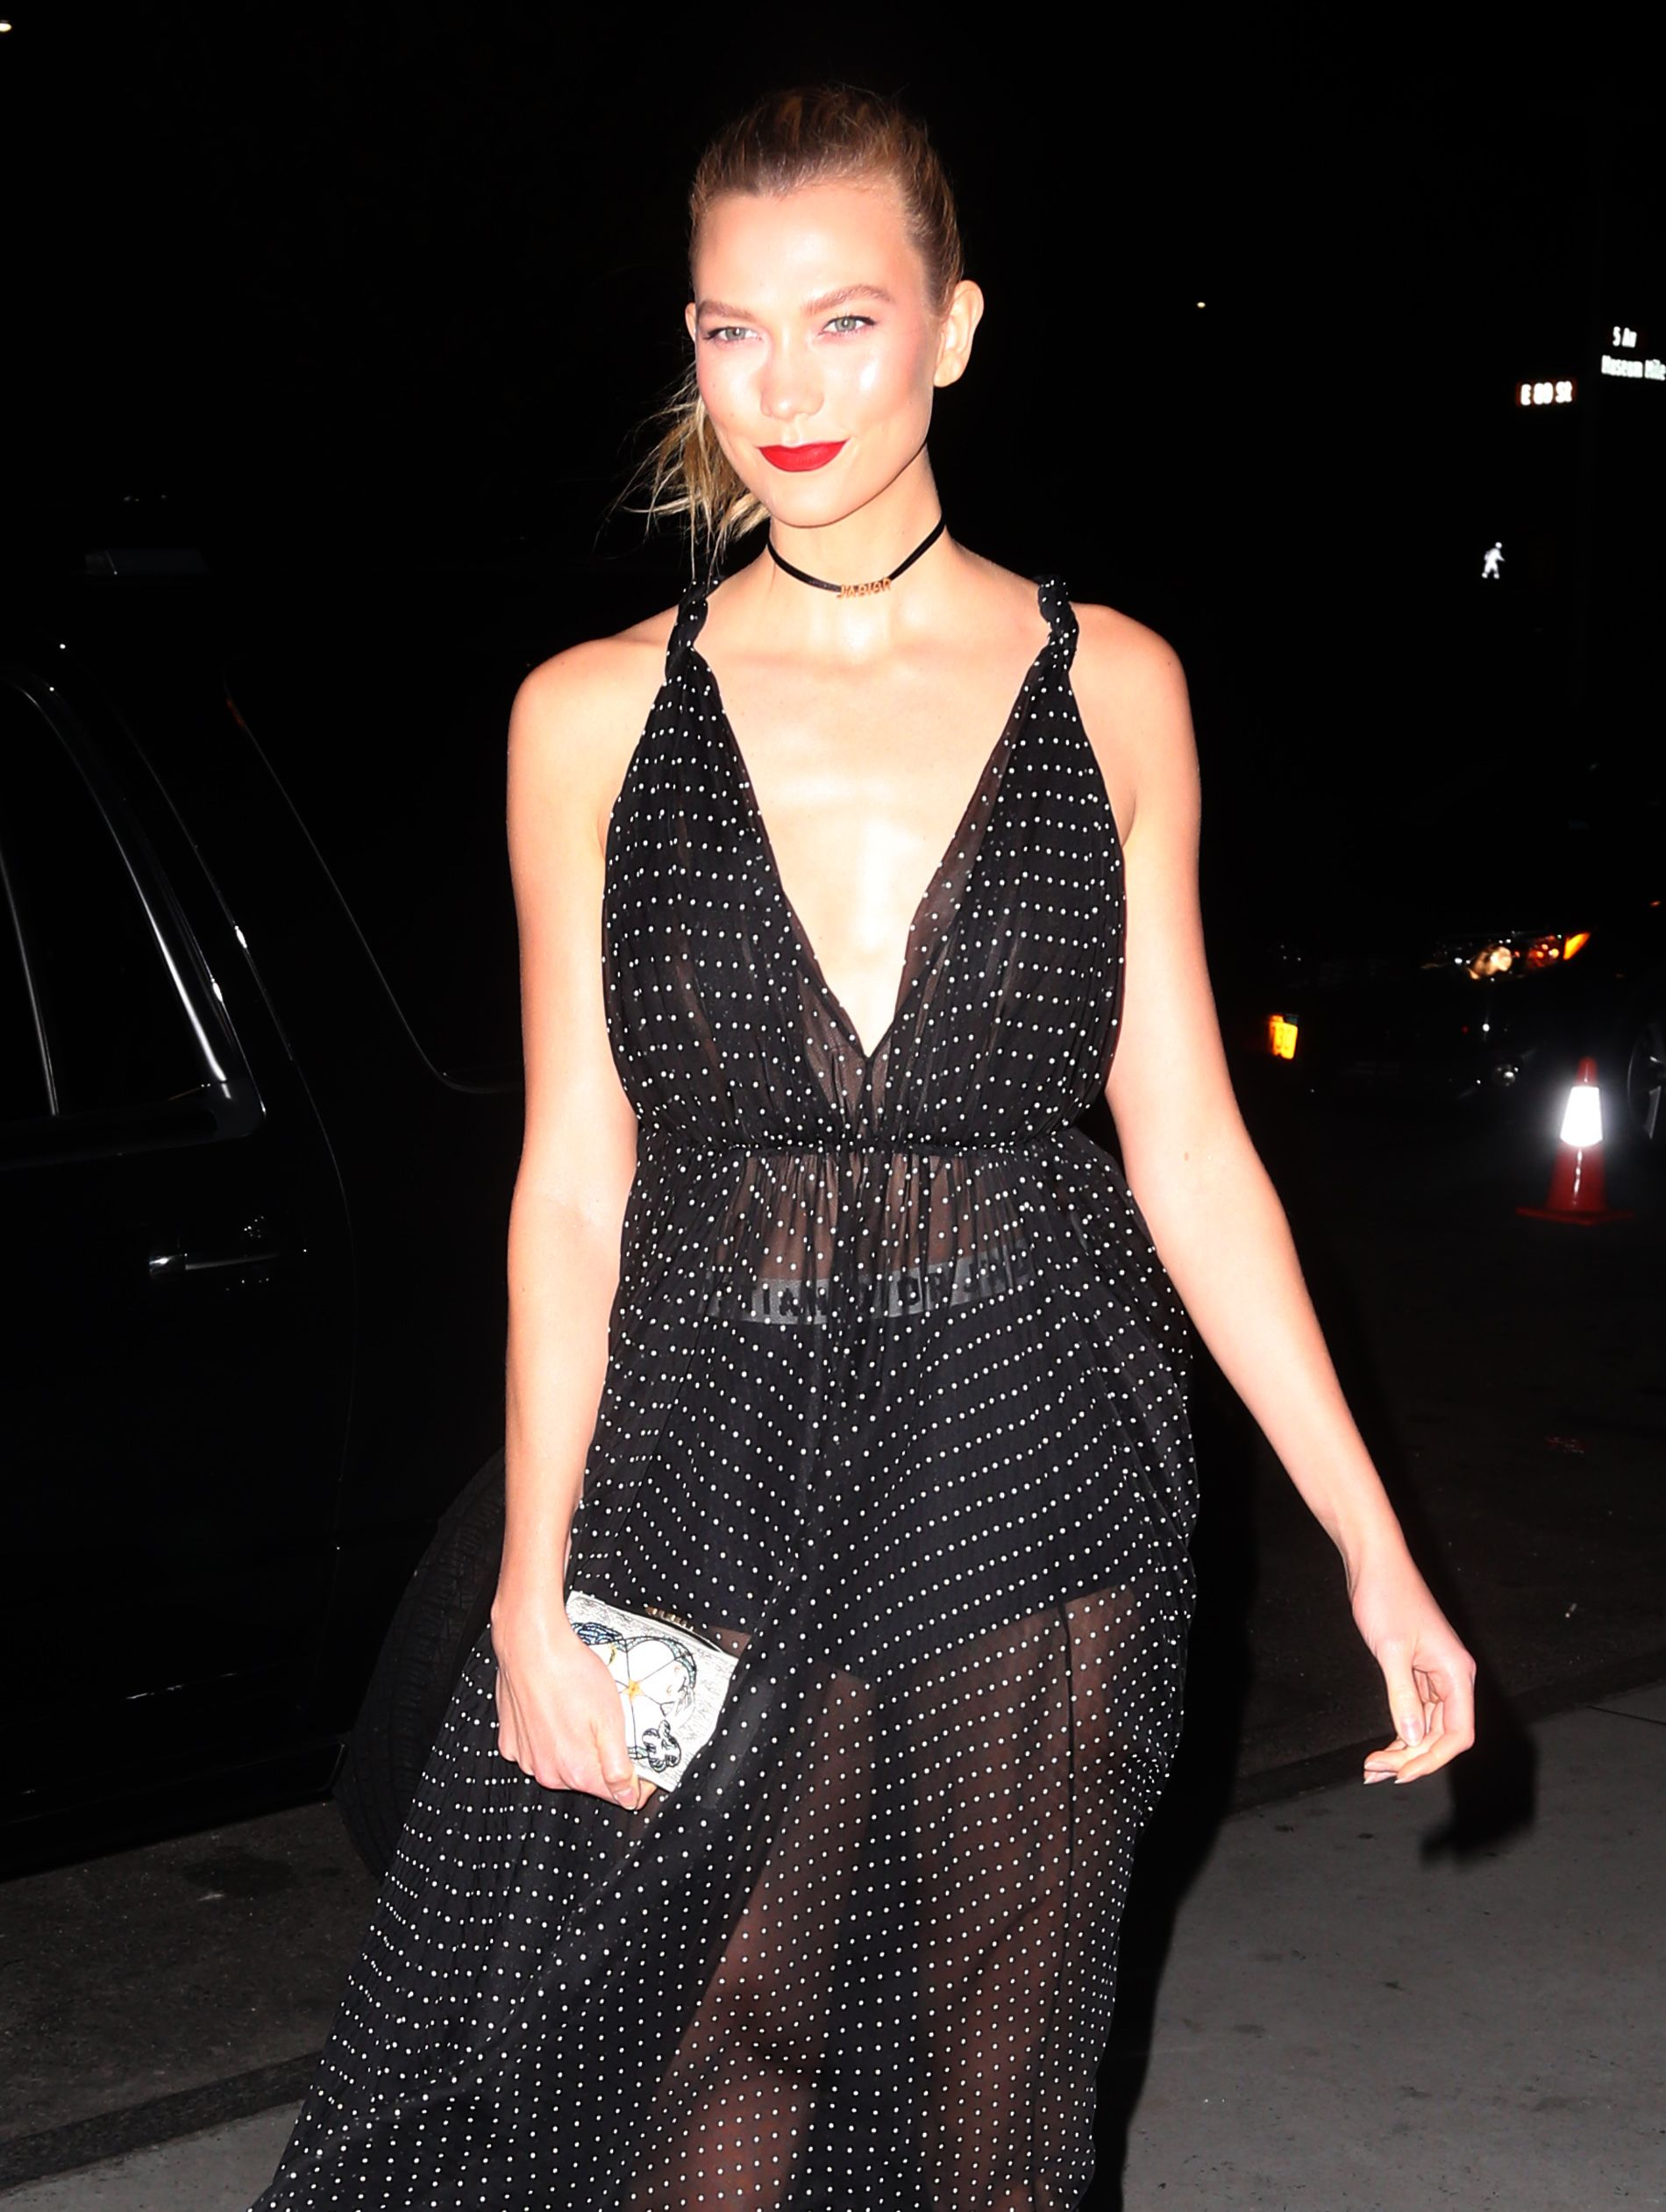 Braless Photos Of Karlie ...